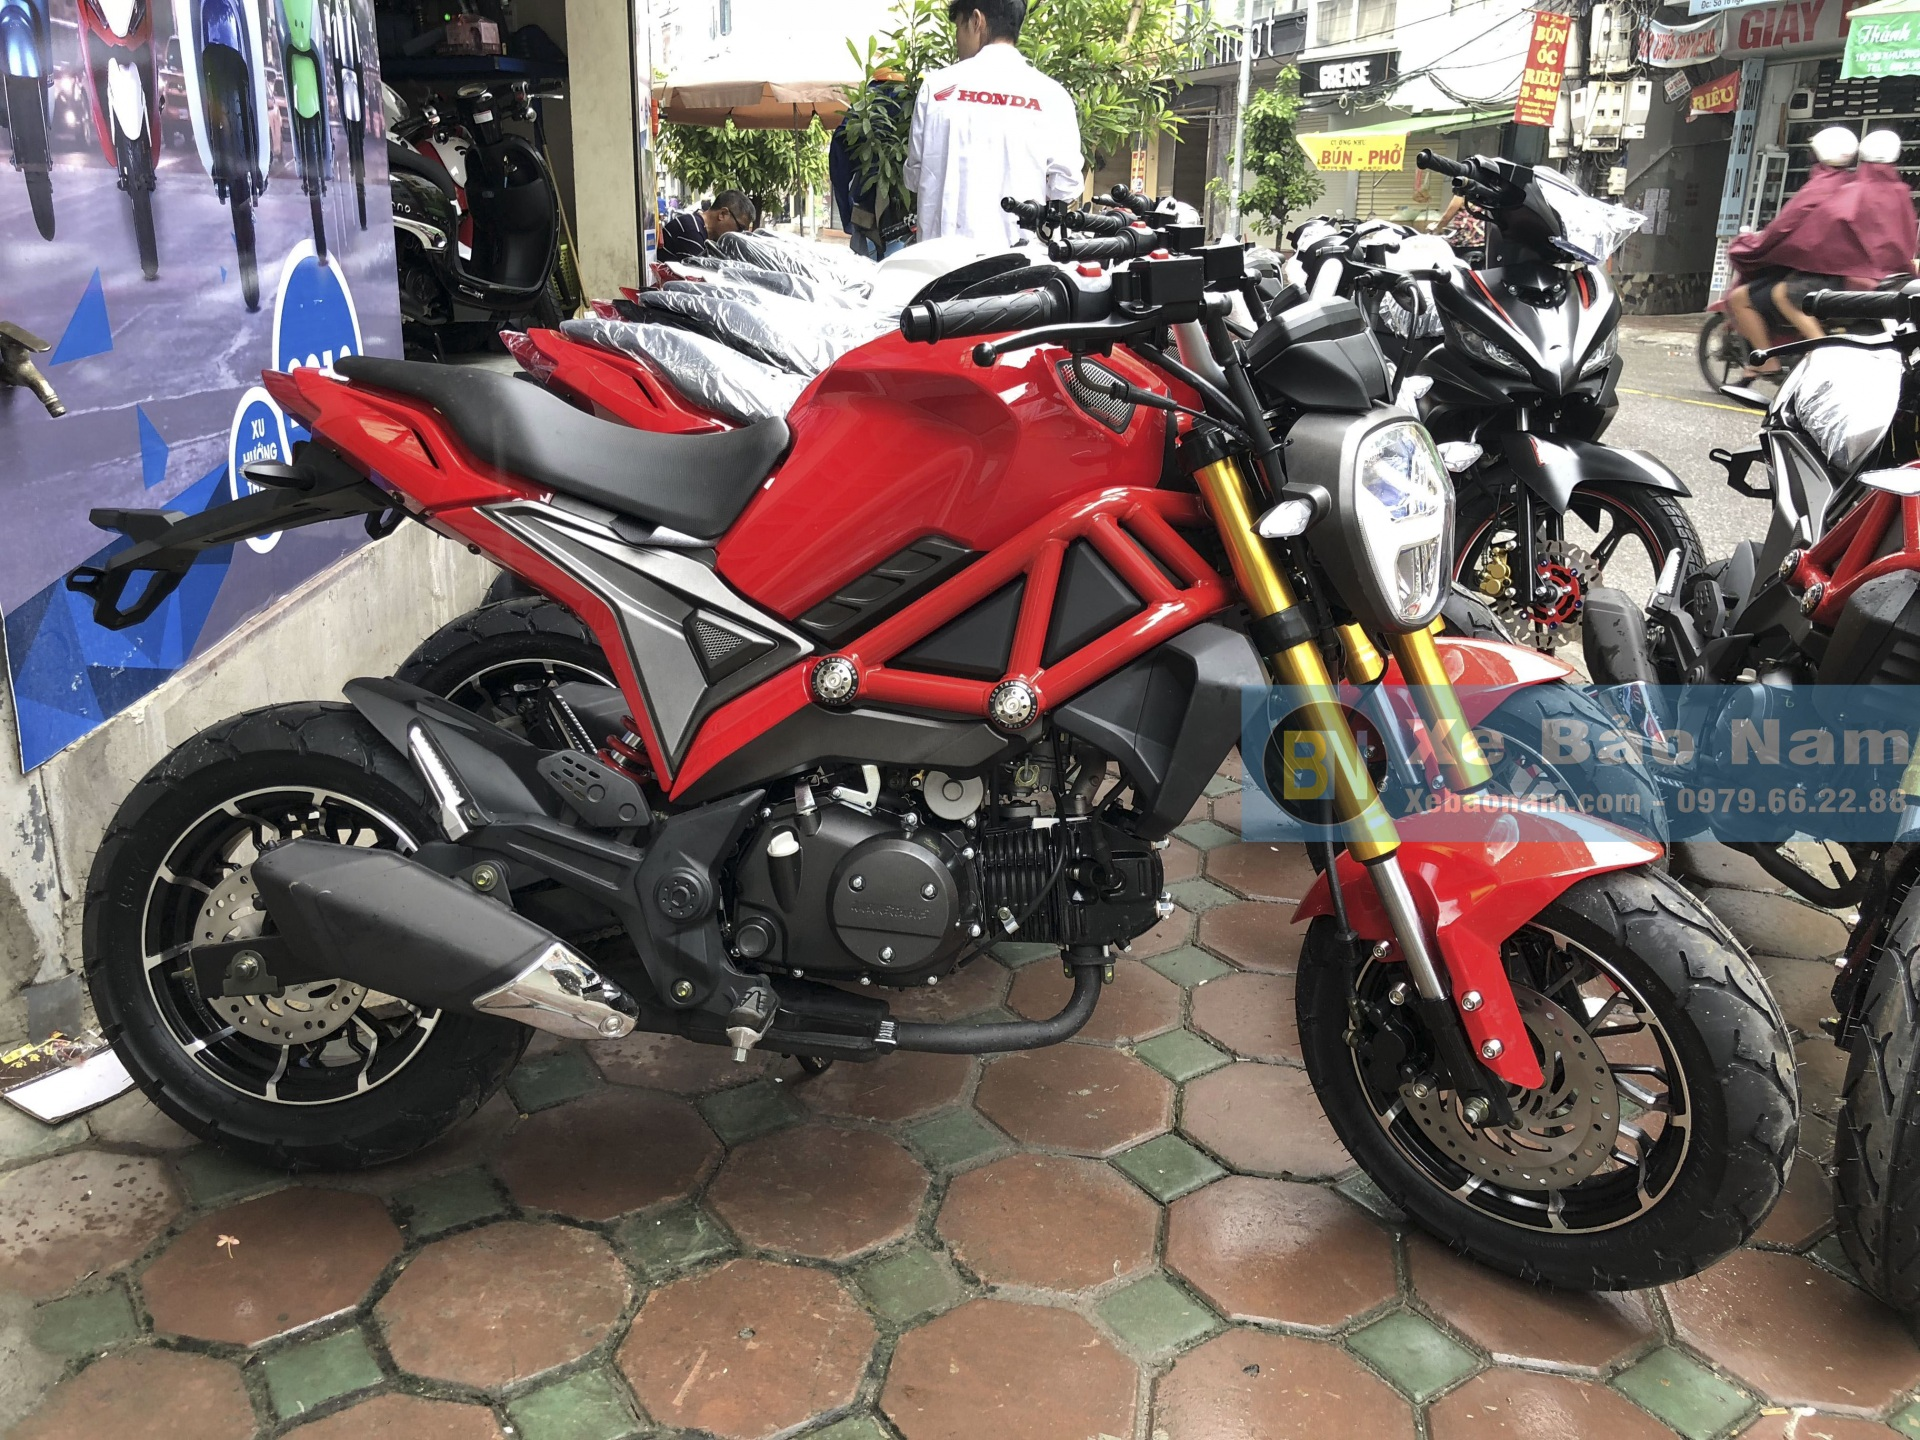 ducati-monster-mini-110cc-doi-moi-14